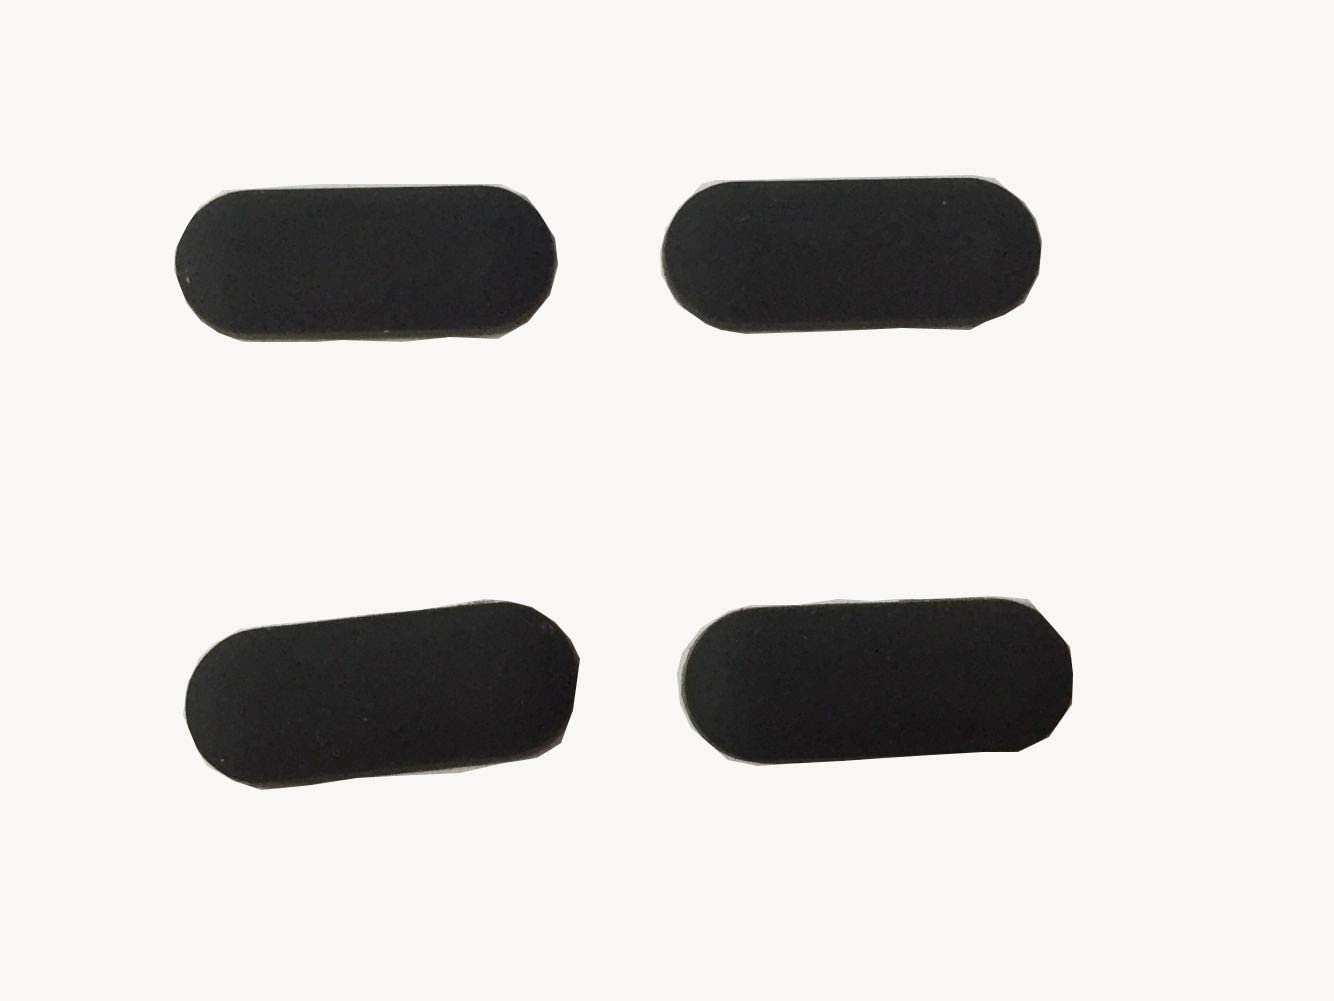 YCLM Replacement Rubber Feet Compatible with Dell Latitude E7440 7240 7250 7450 Series Bottom Foot Cover Clack 4PCS/Set